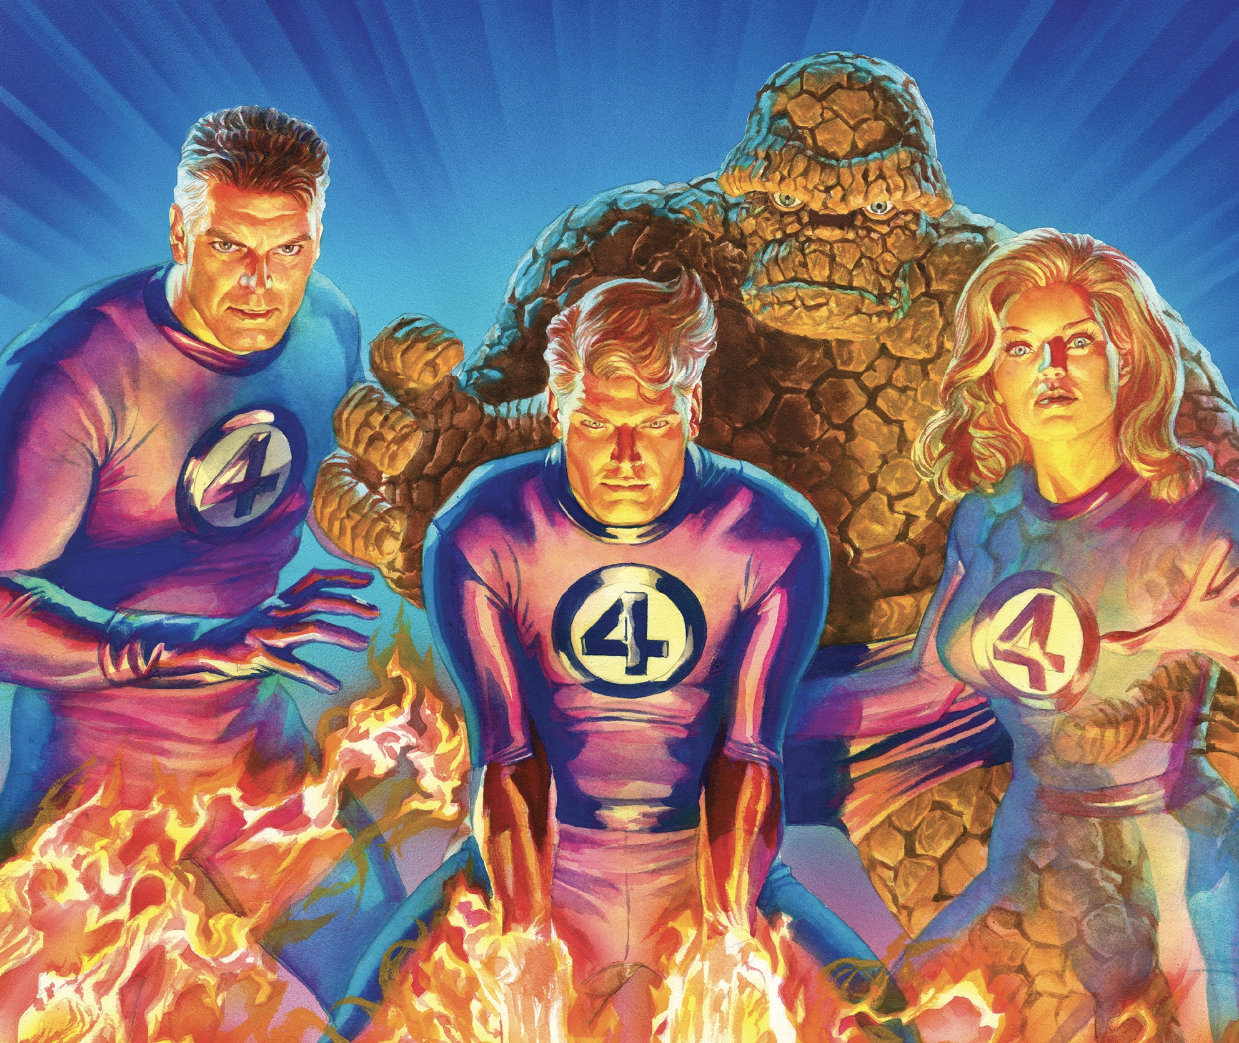 Fantastic Four No 1 - Alex Ross variant cover